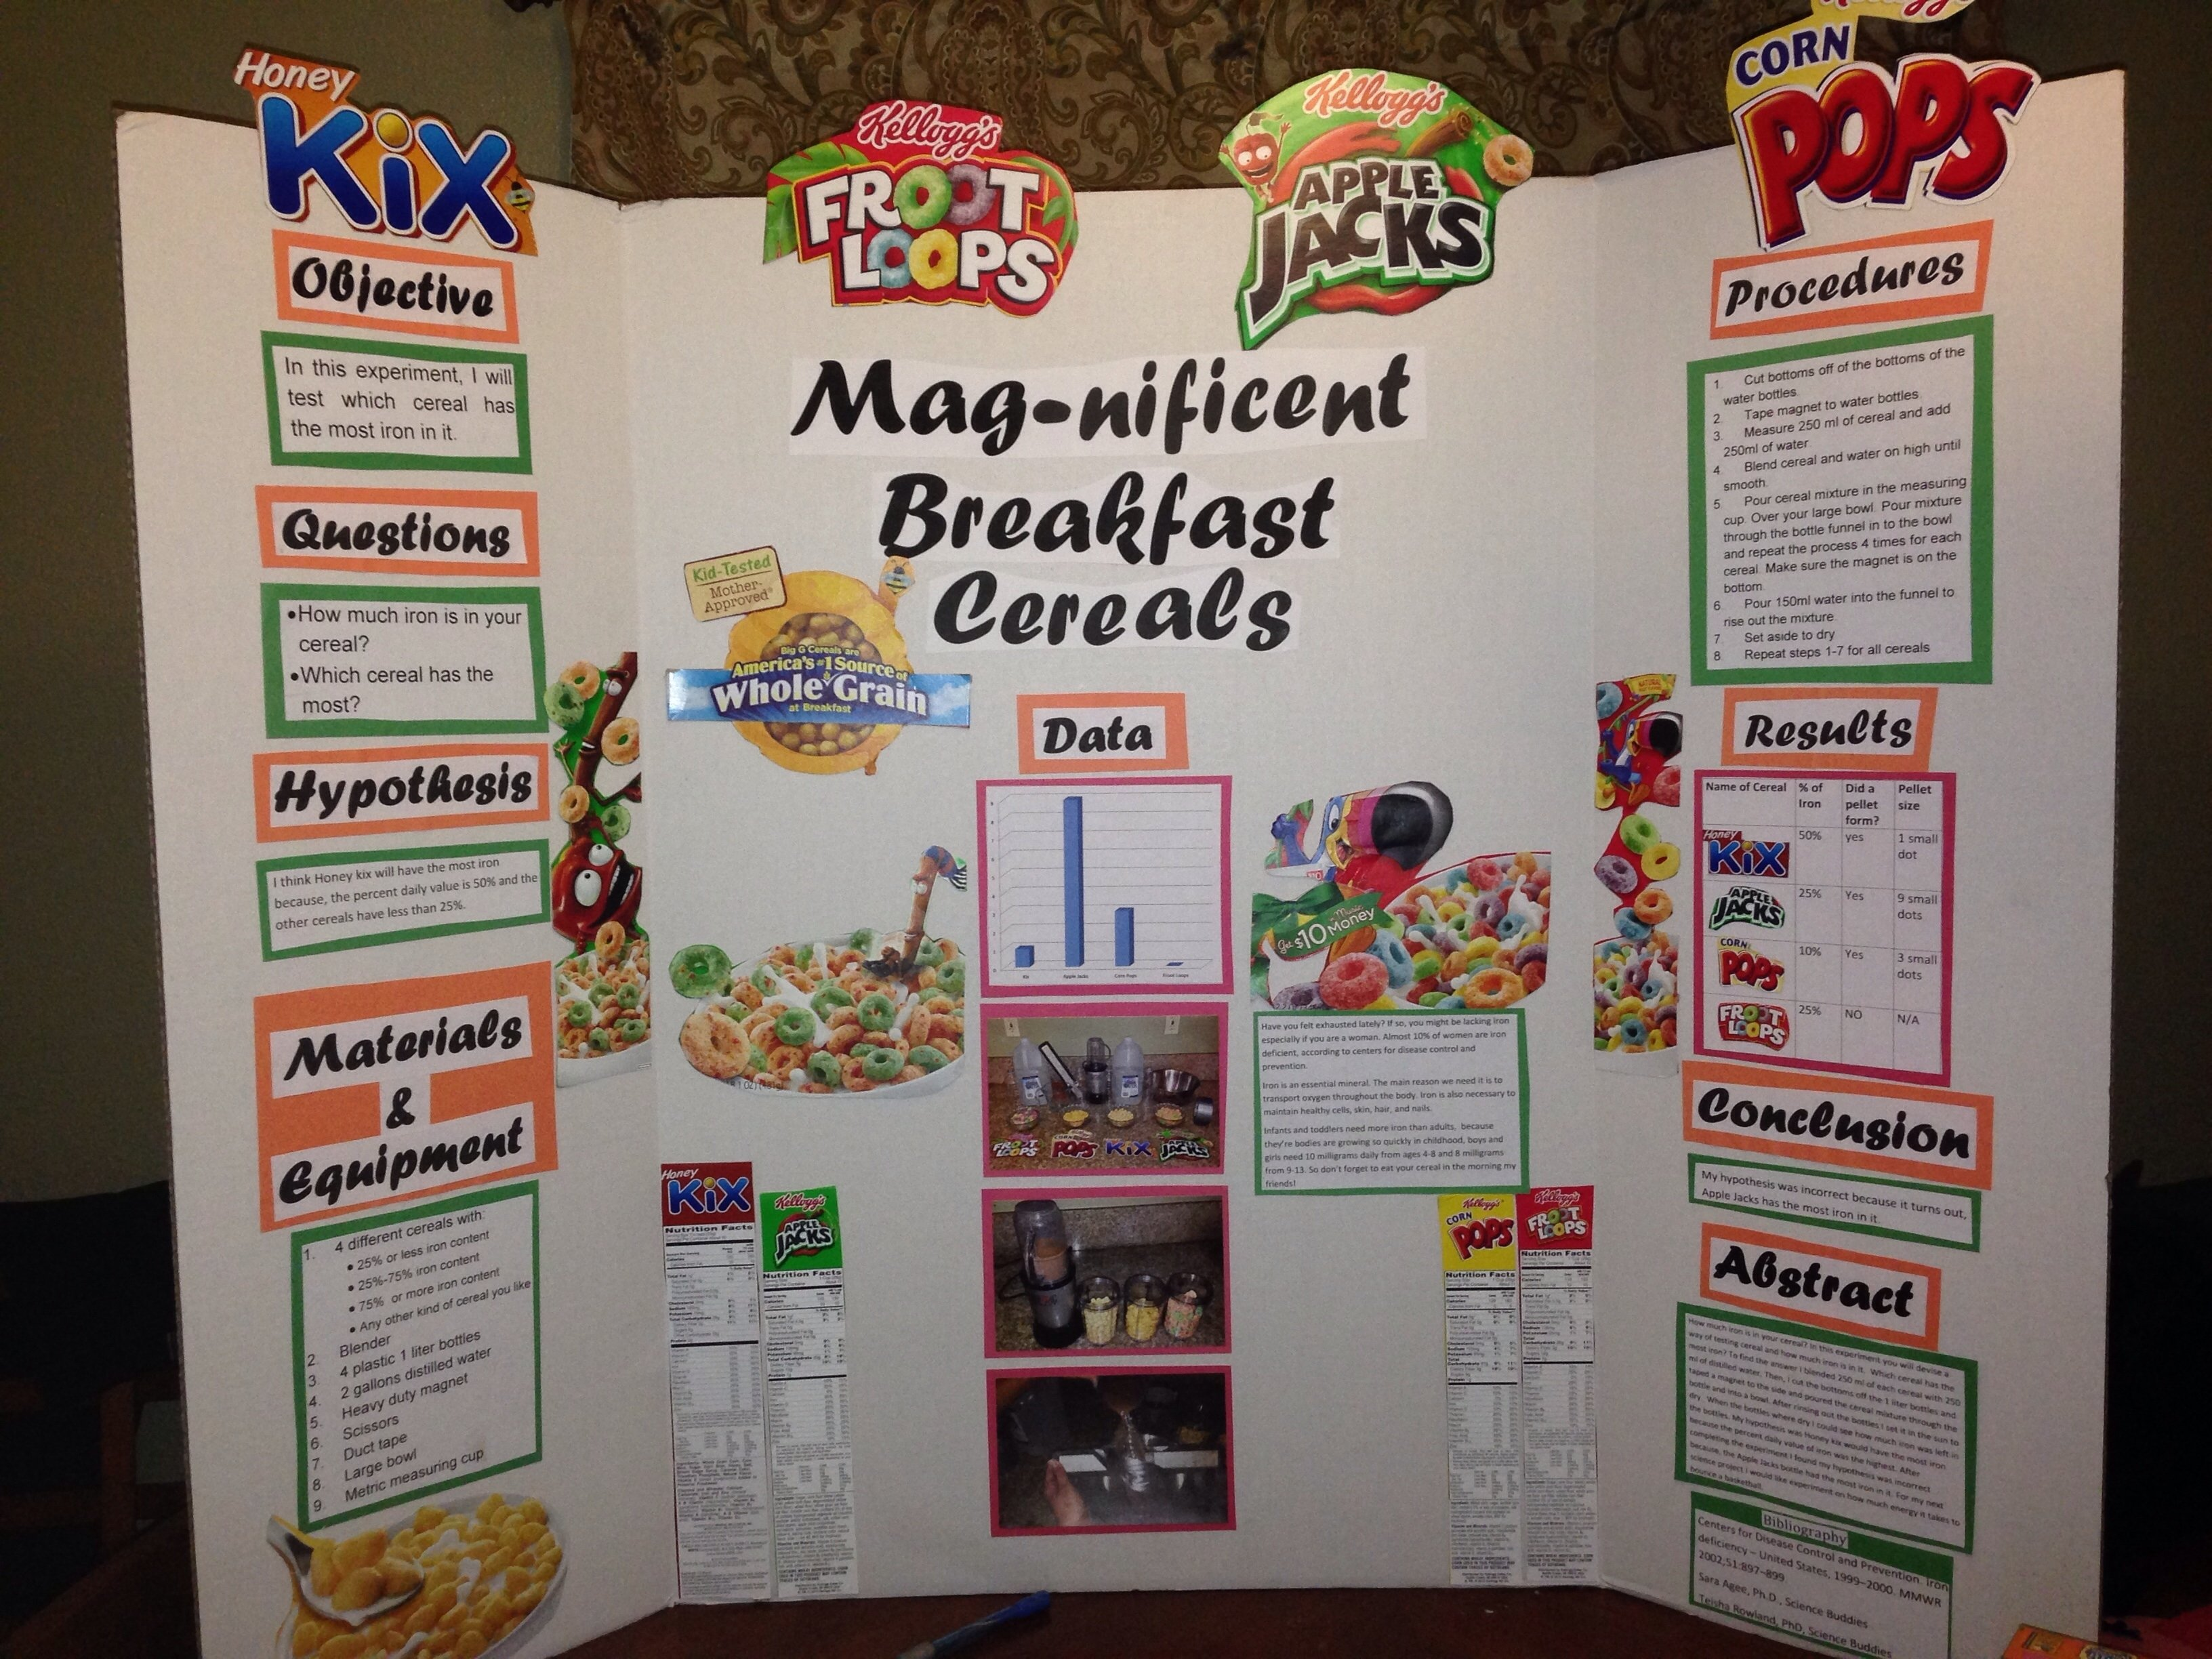 10 Fashionable Science Fair Ideas With Food science fair order mag nificent breakfast cereal 17 best images 2020